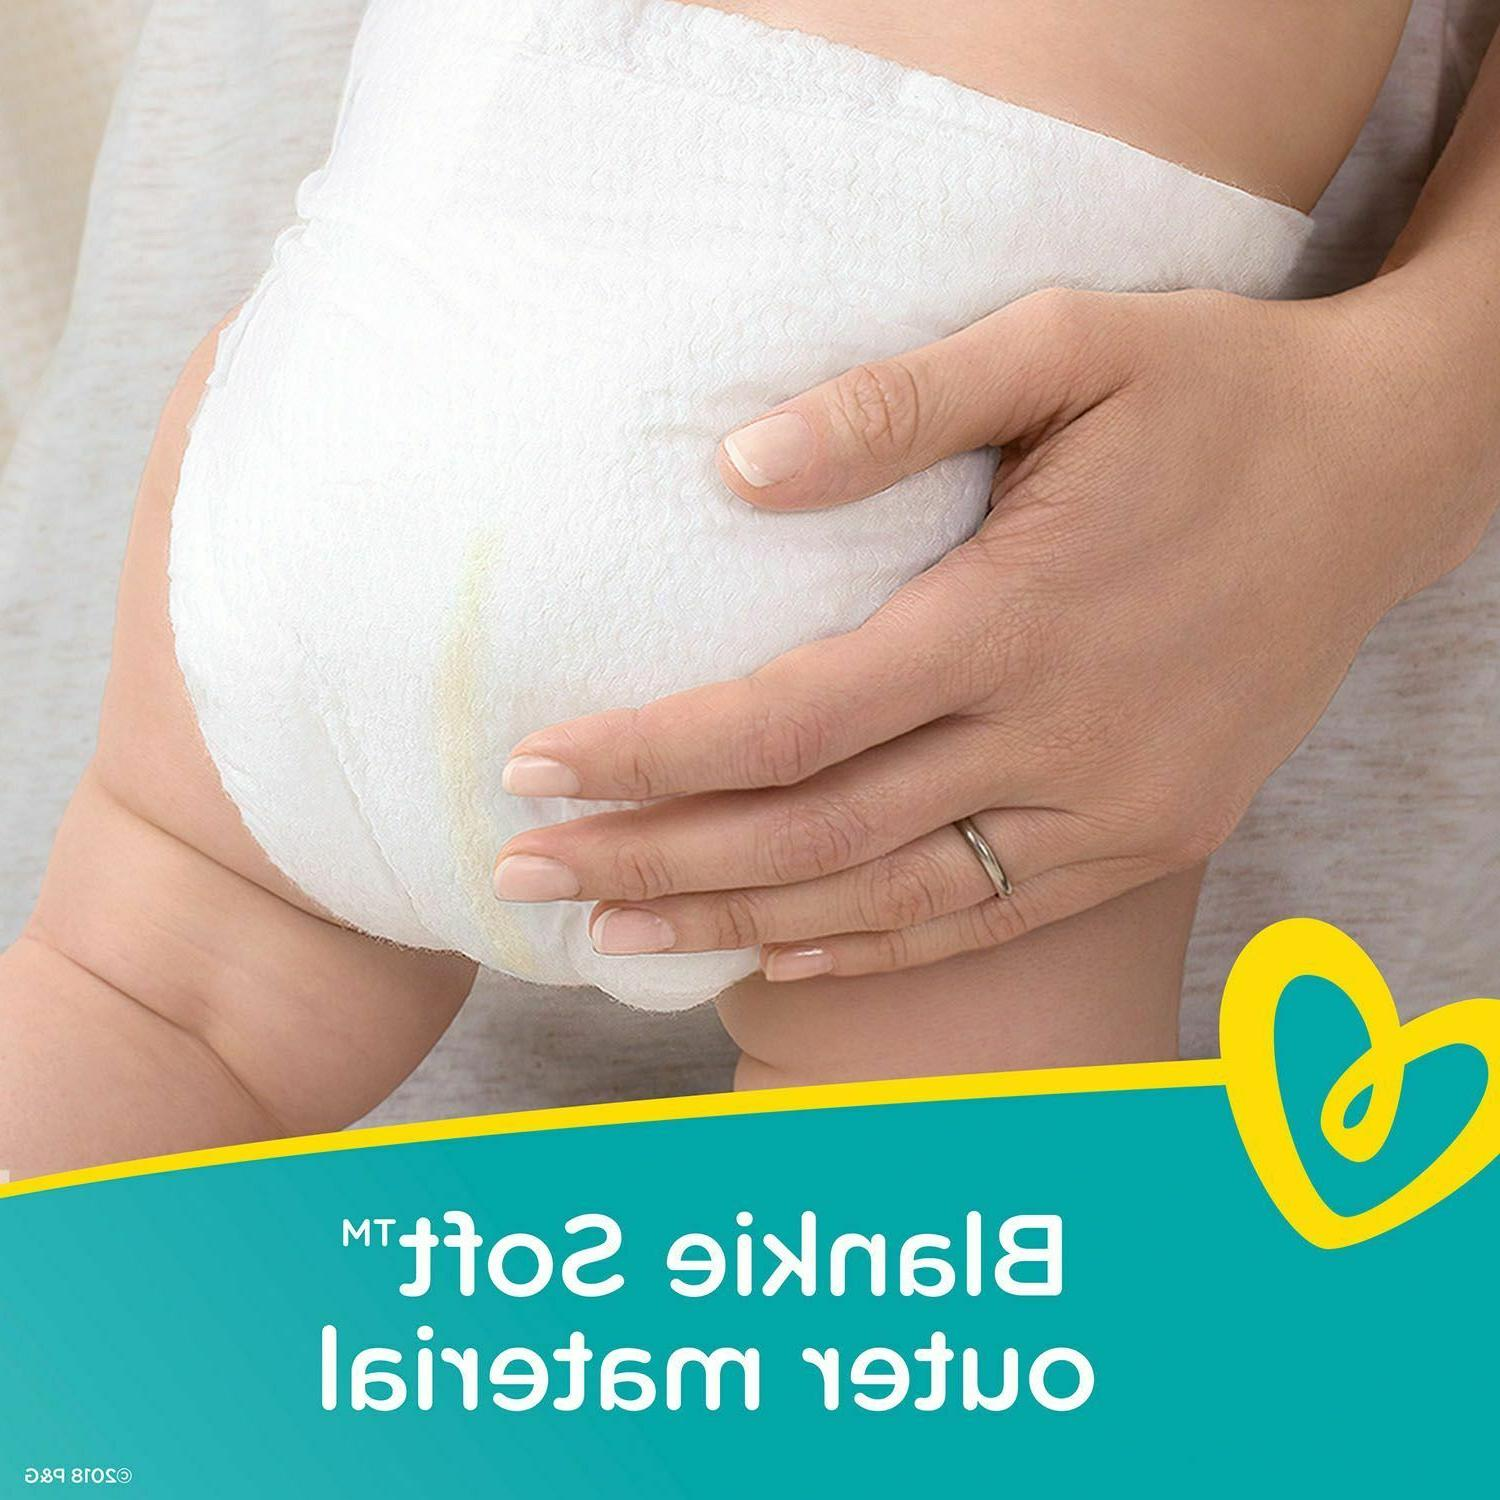 Pampers Swaddlers PRICE AND IN US